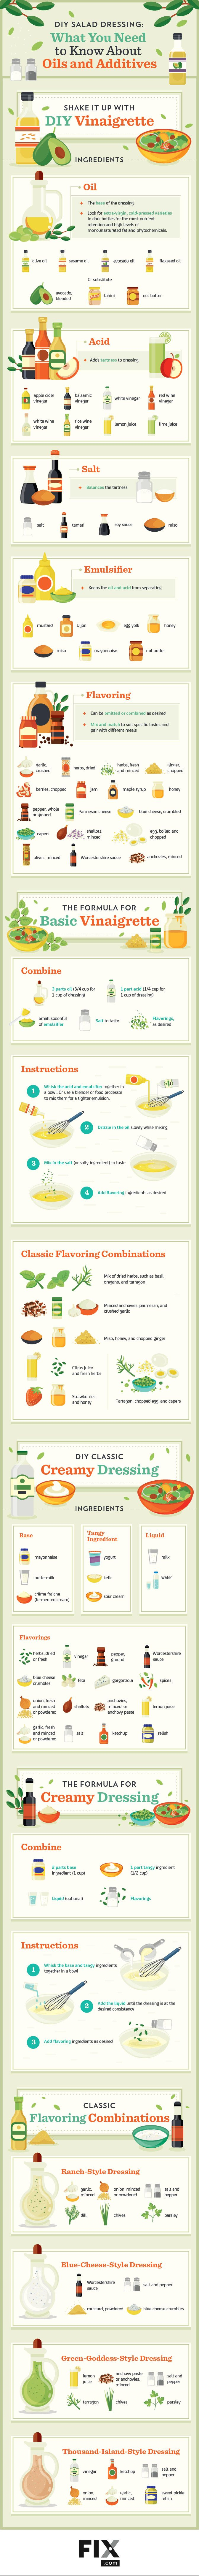 When we're trying to eat healthy the first food that comes to mind is a salad. But what you might not realize is there are a lot of additives and oils in the delicious dressings we are pouring over our leafy greens. Learn how you can avoid the bad and benefit from the good with our guide to DIY salad dressing.